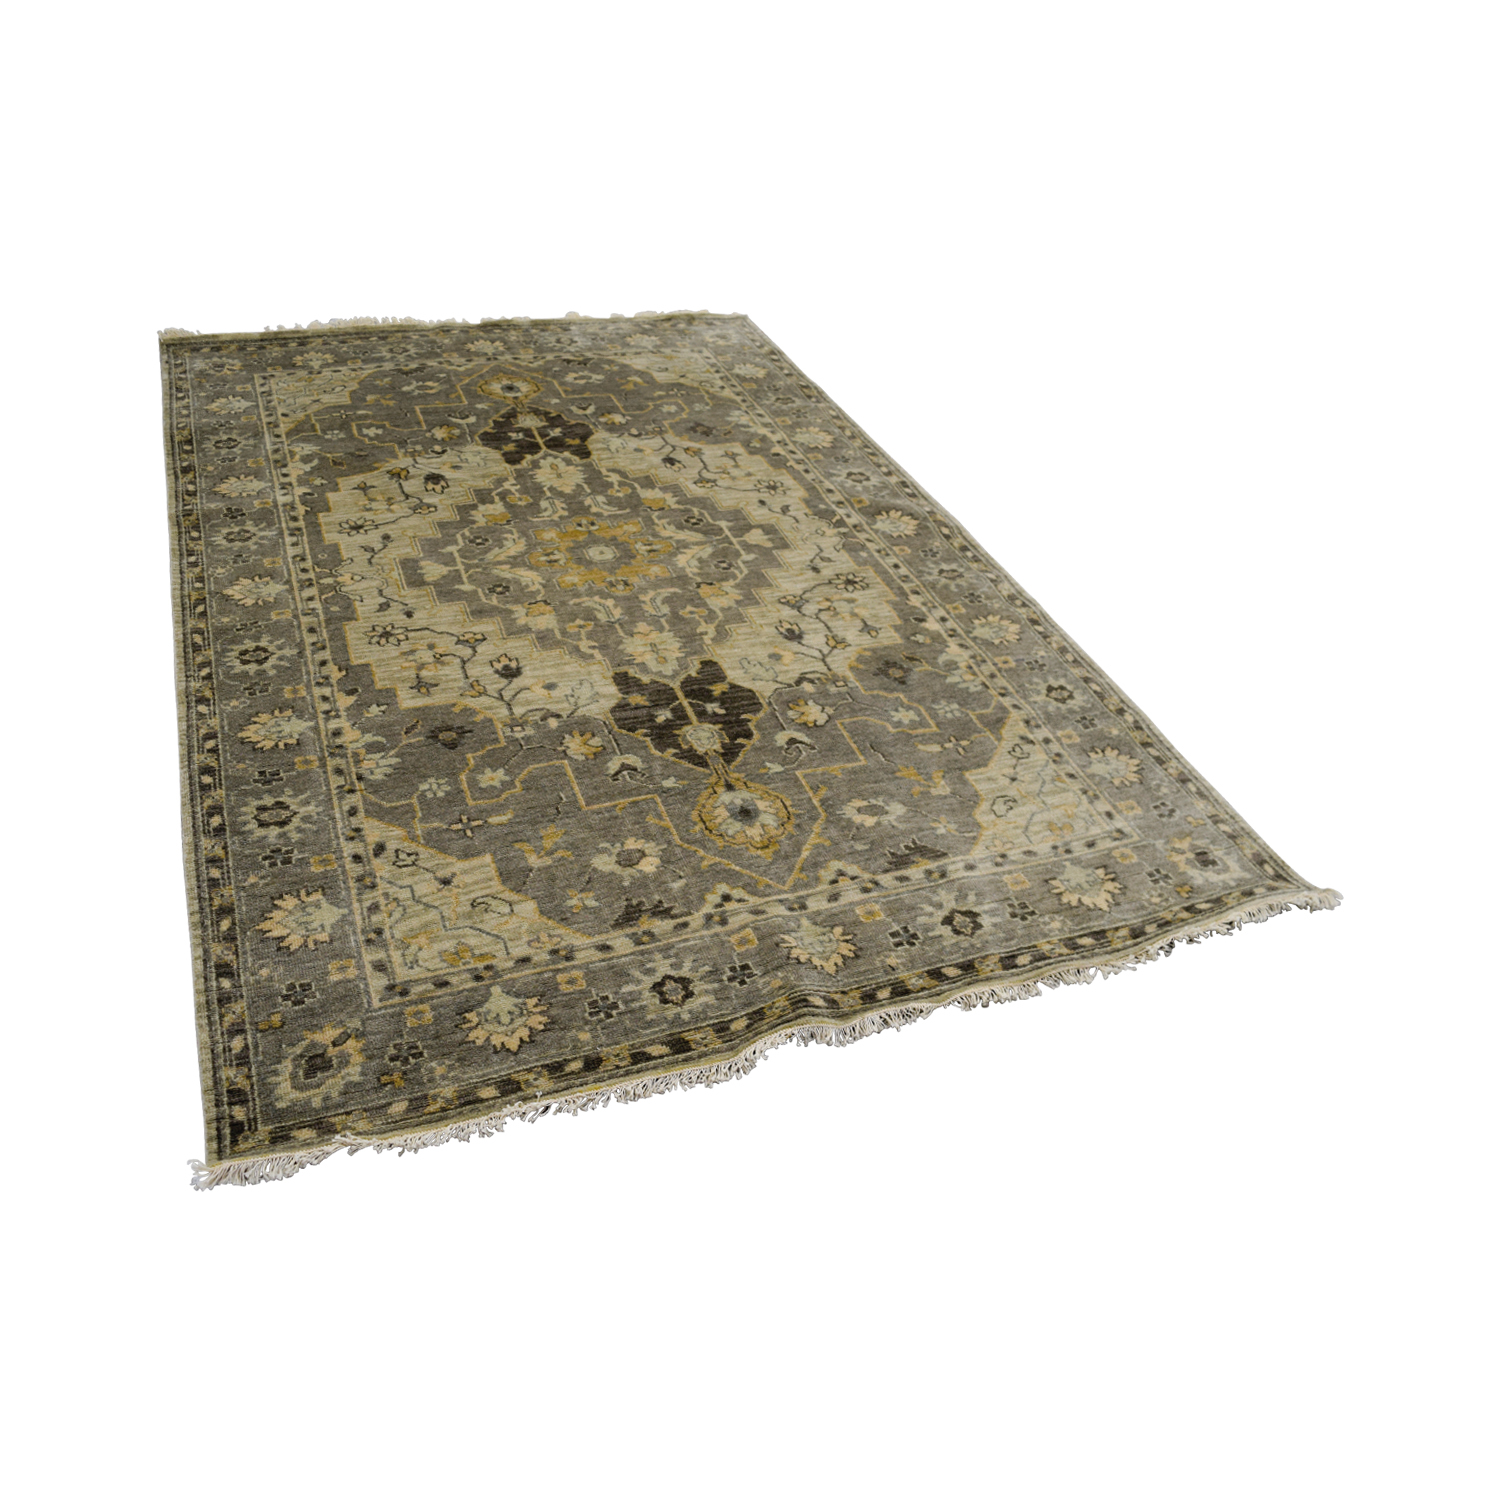 Obeetee Obeetee Hand Knotted Gray Wool Rug Grey